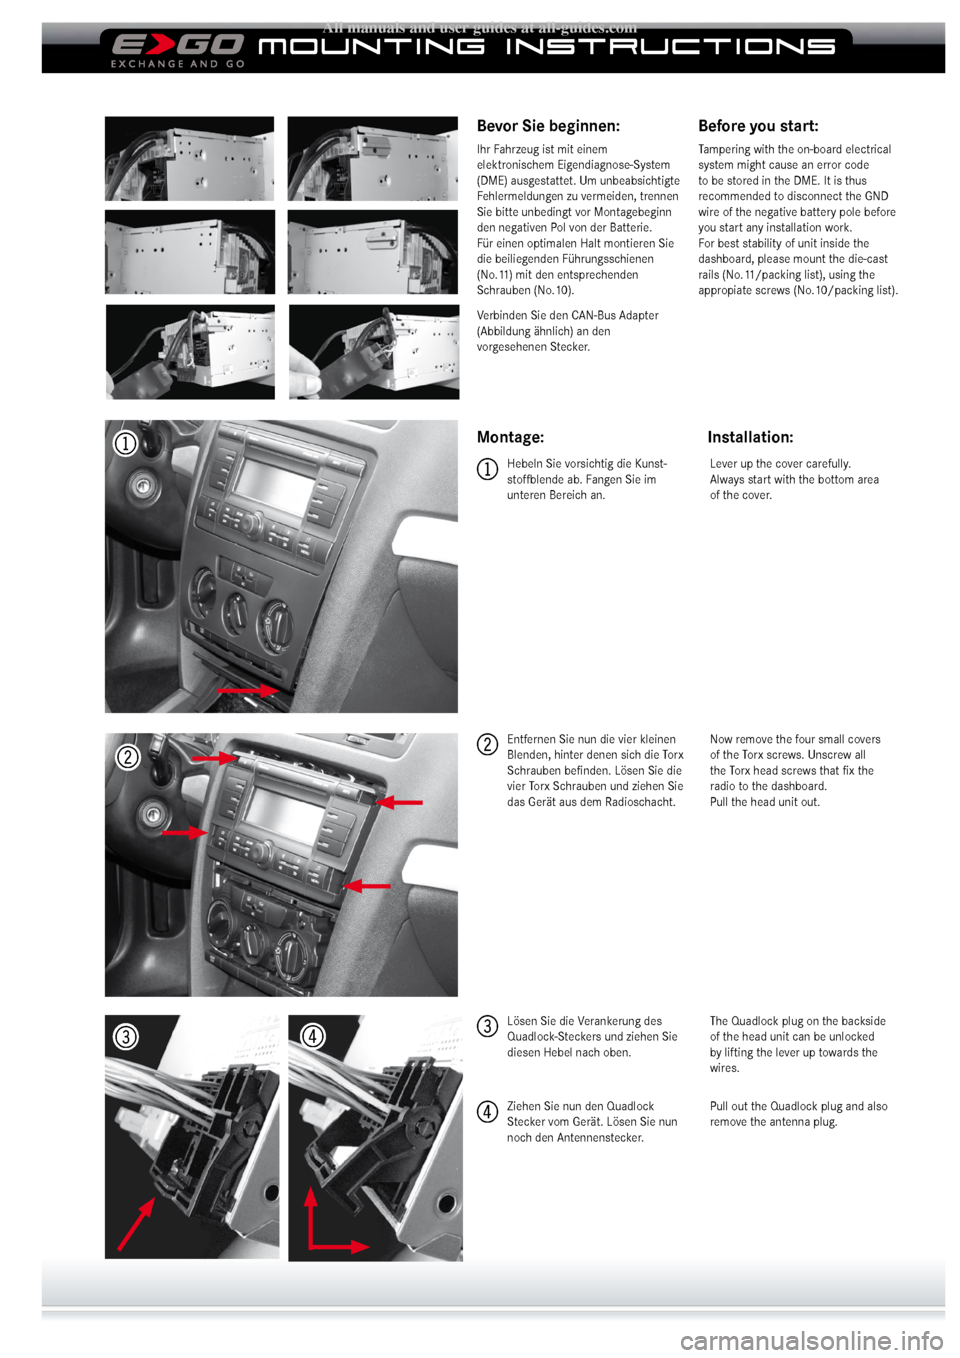 SKODA OCTAVIA 2008 2.G / (1Z) ZEMC5600 Mounting Instruction, Page 2